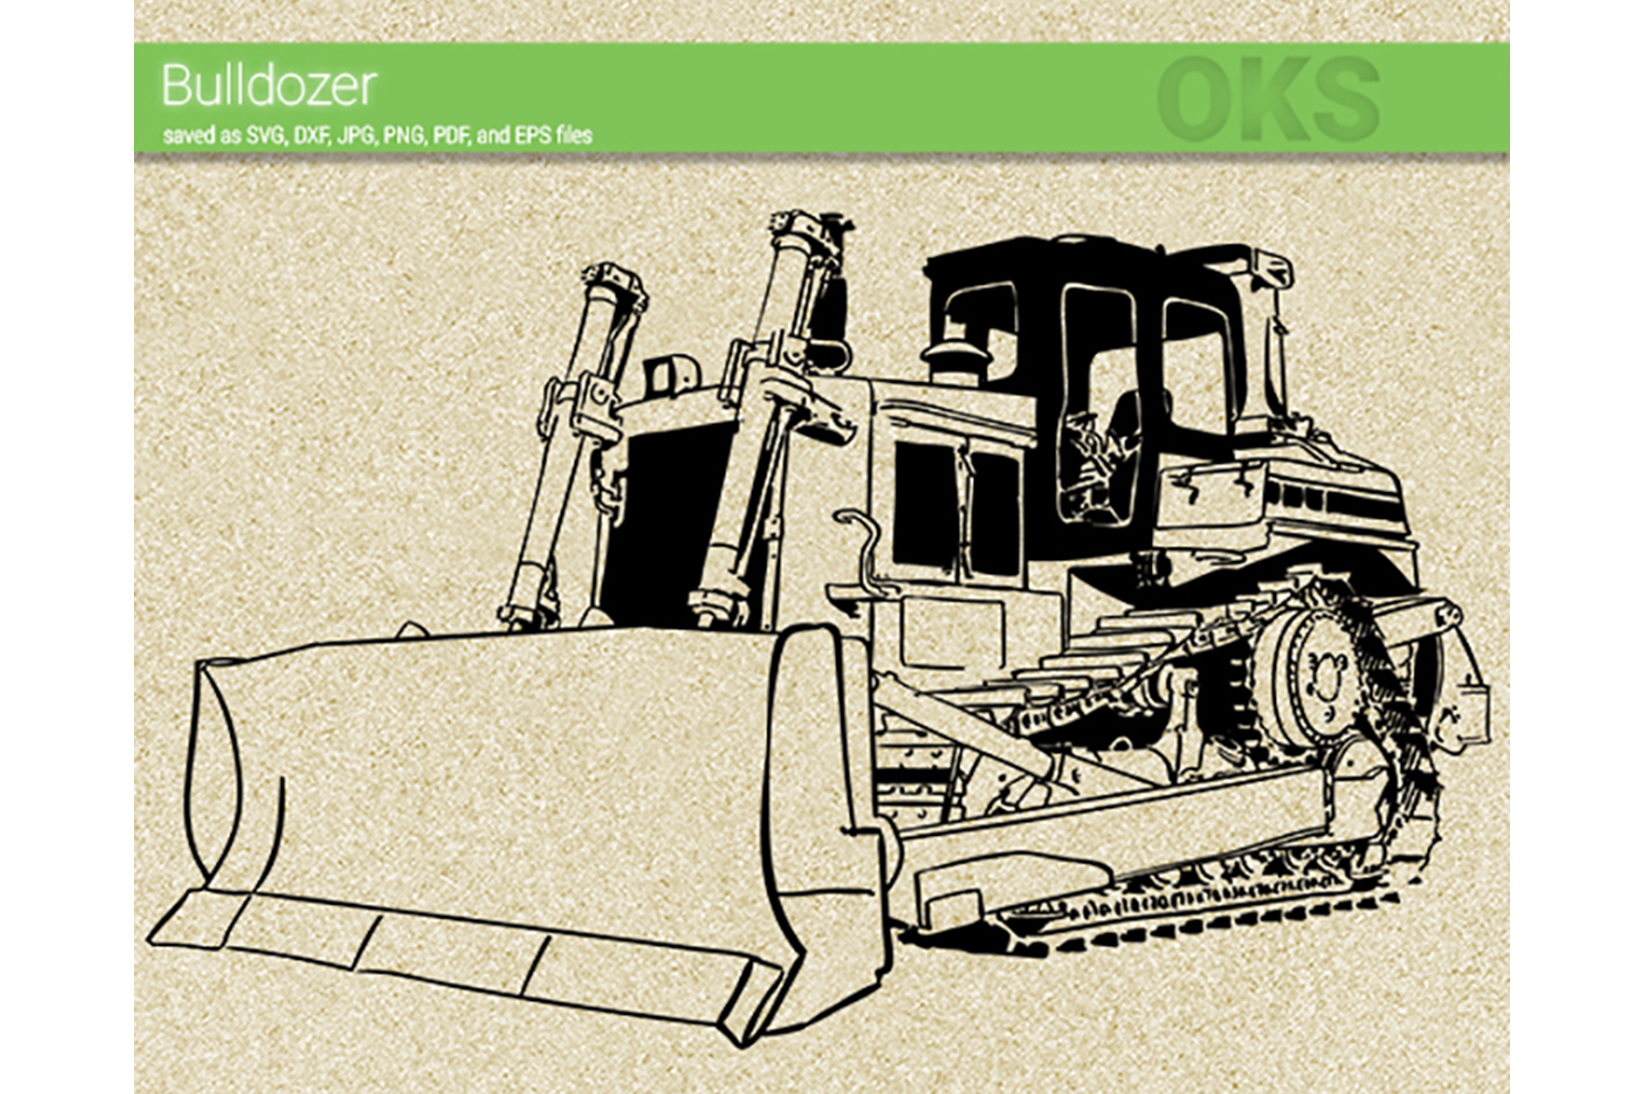 Download Free Bulldozer Vector Graphic By Crafteroks Creative Fabrica for Cricut Explore, Silhouette and other cutting machines.